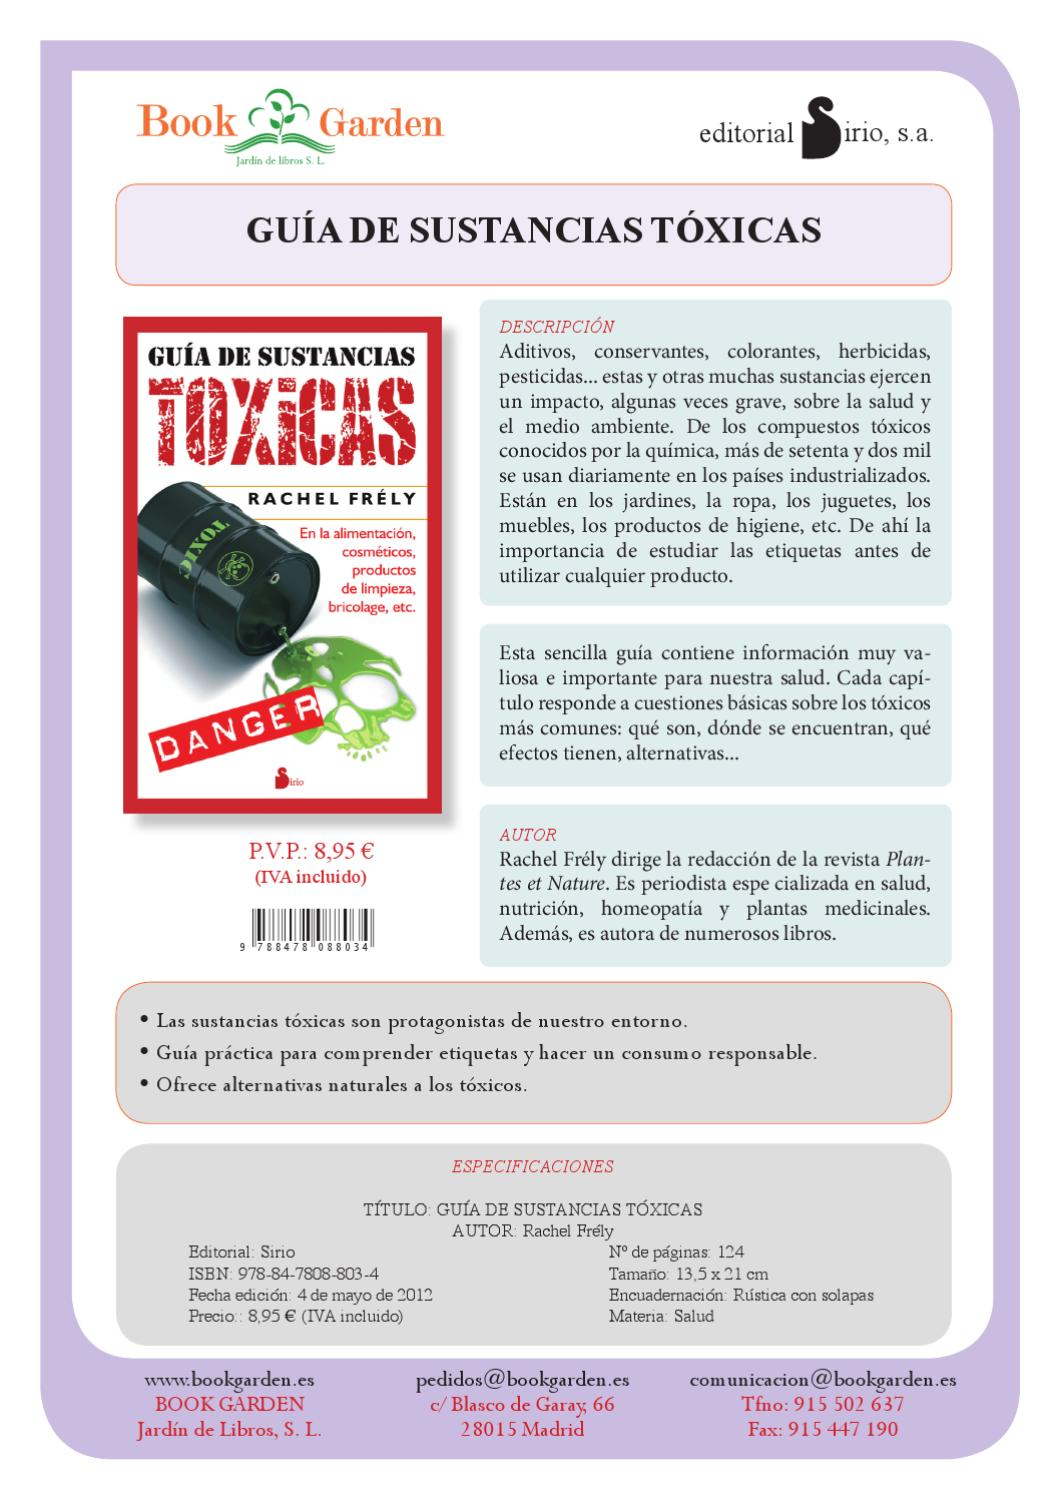 Guia De Ssutancias Toxicas By Bookgarden Distribucion Editorial  # Muebles No Toxicos